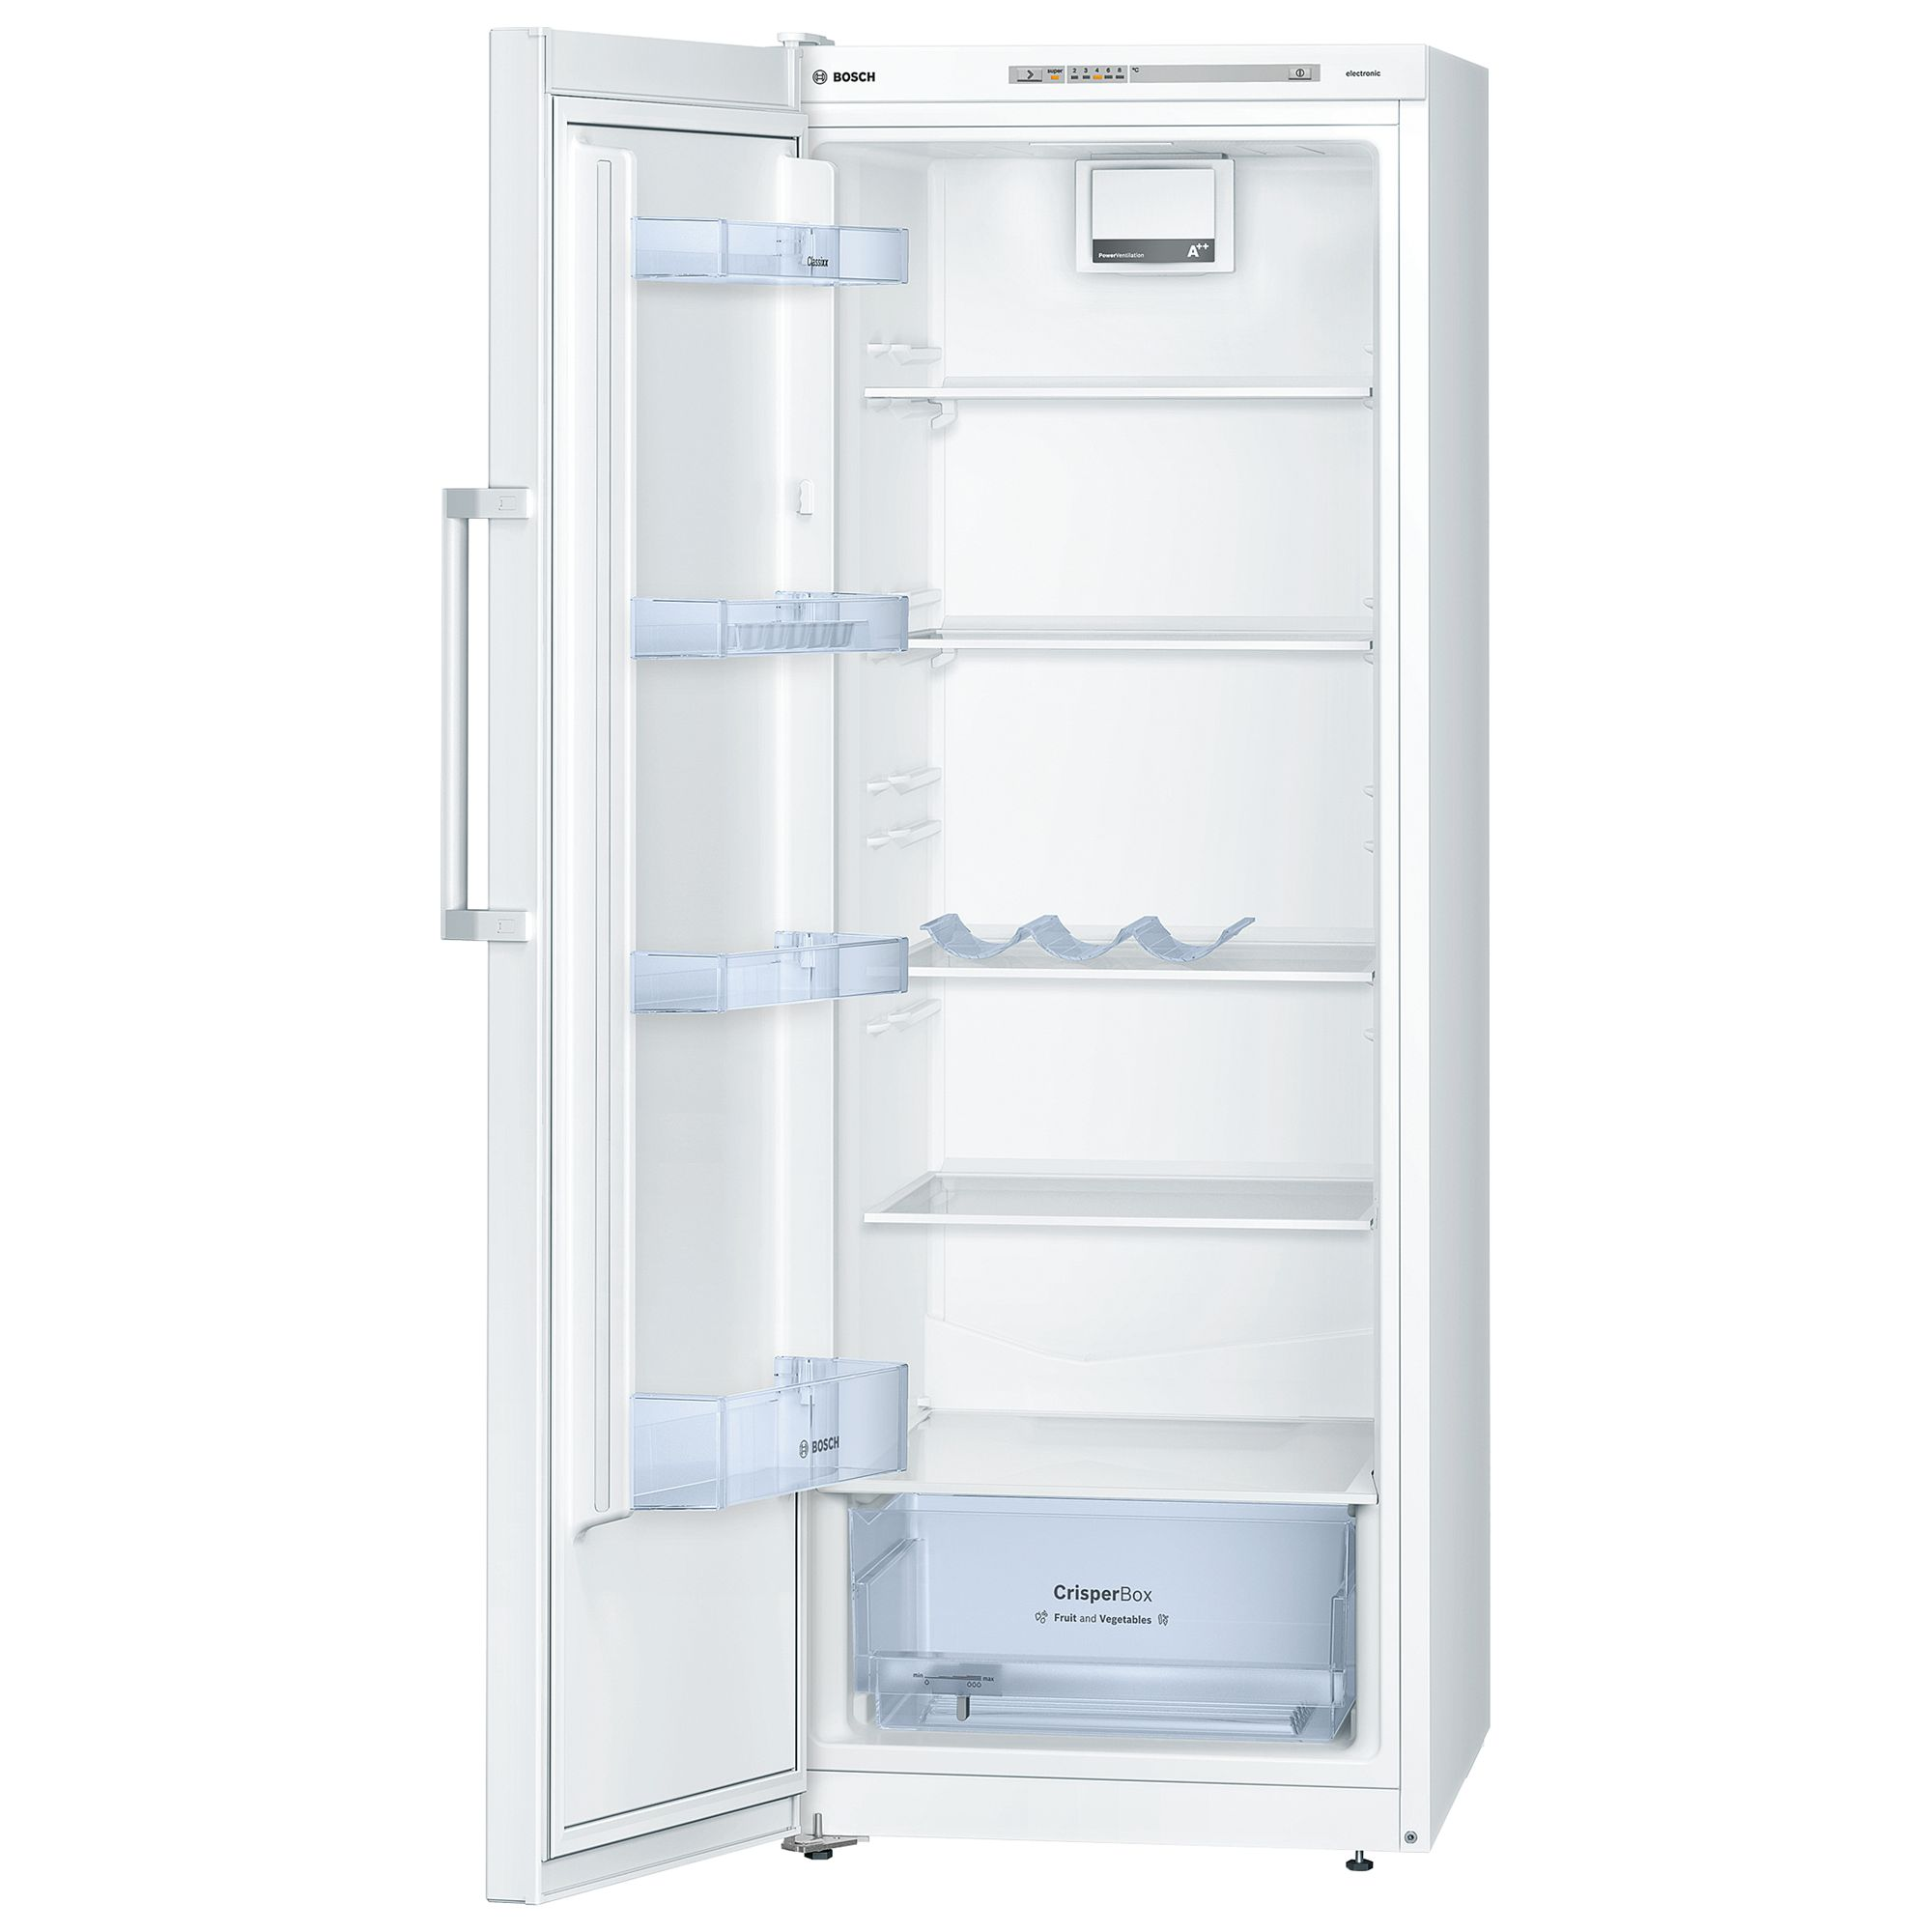 Bosch KSV29NW30G Tall Larder Fridge, A++ Energy Rating, 60cm Wide, White